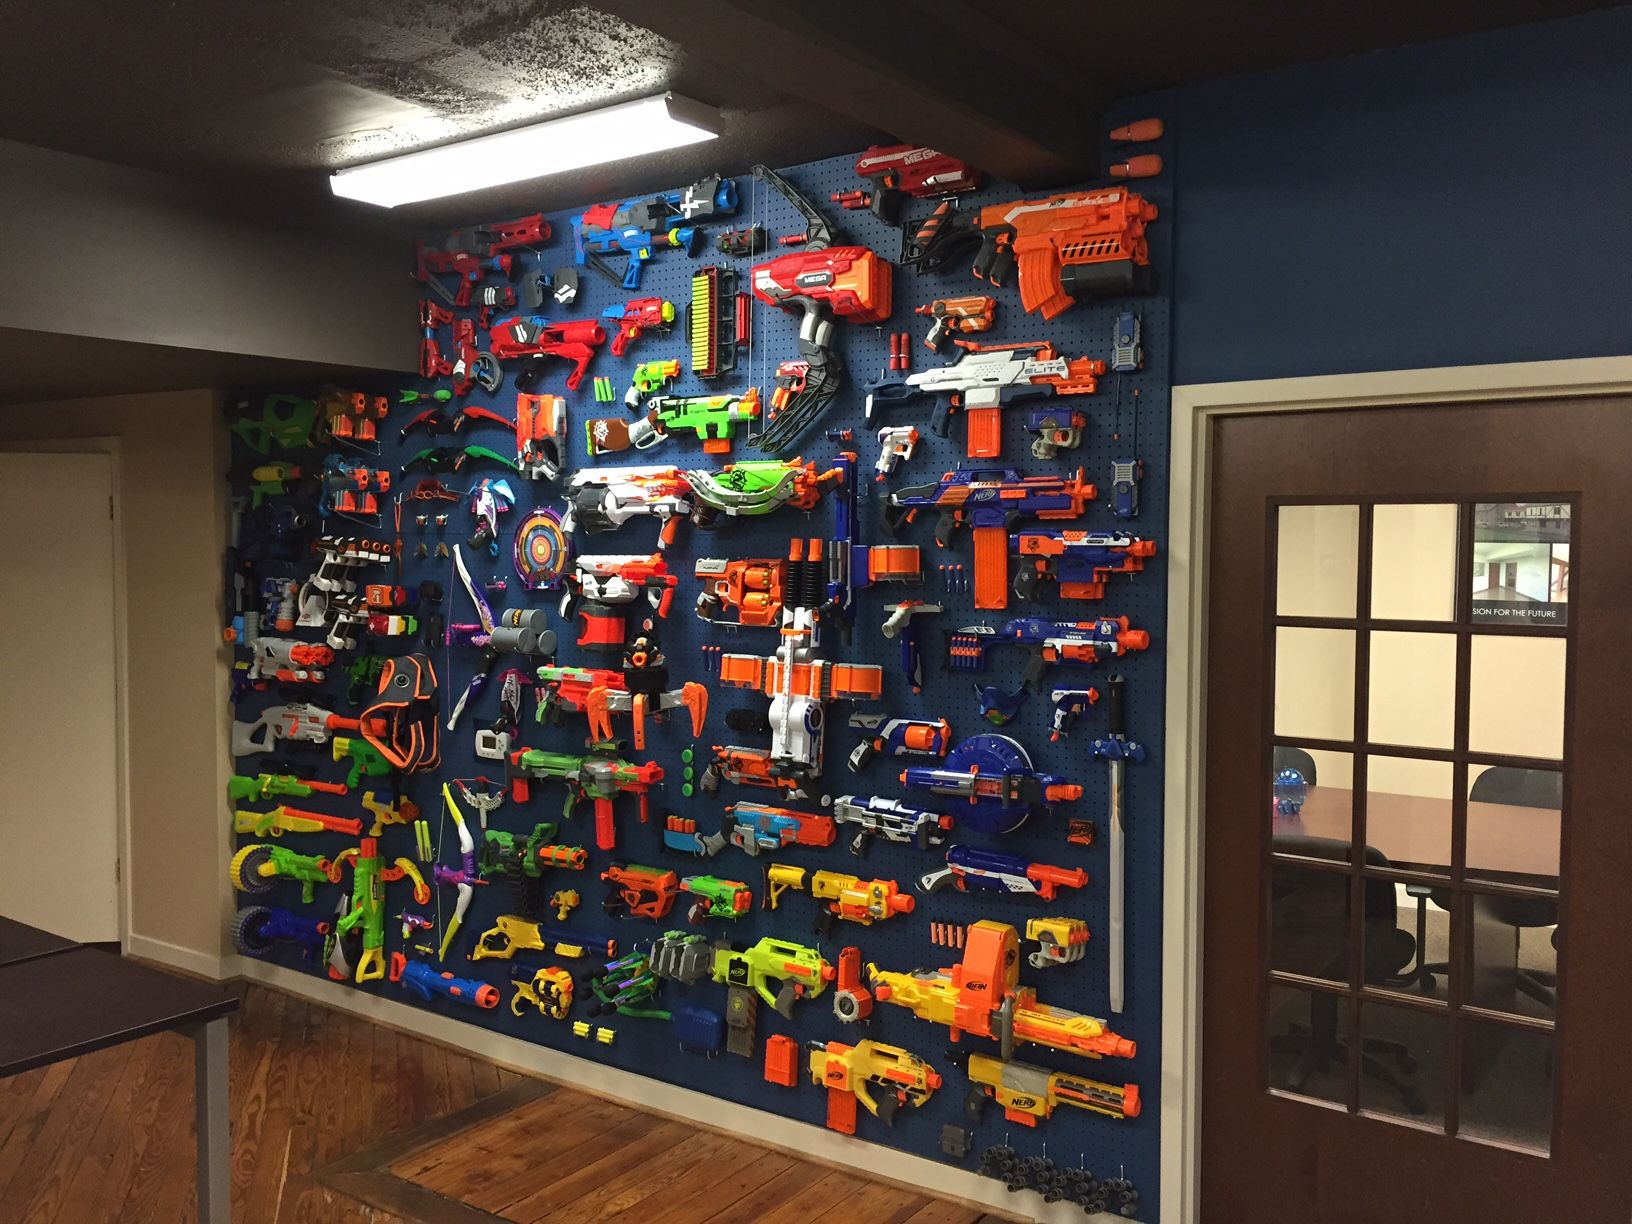 Pin On Kid Rooms: Nerf Customizations - Google Search